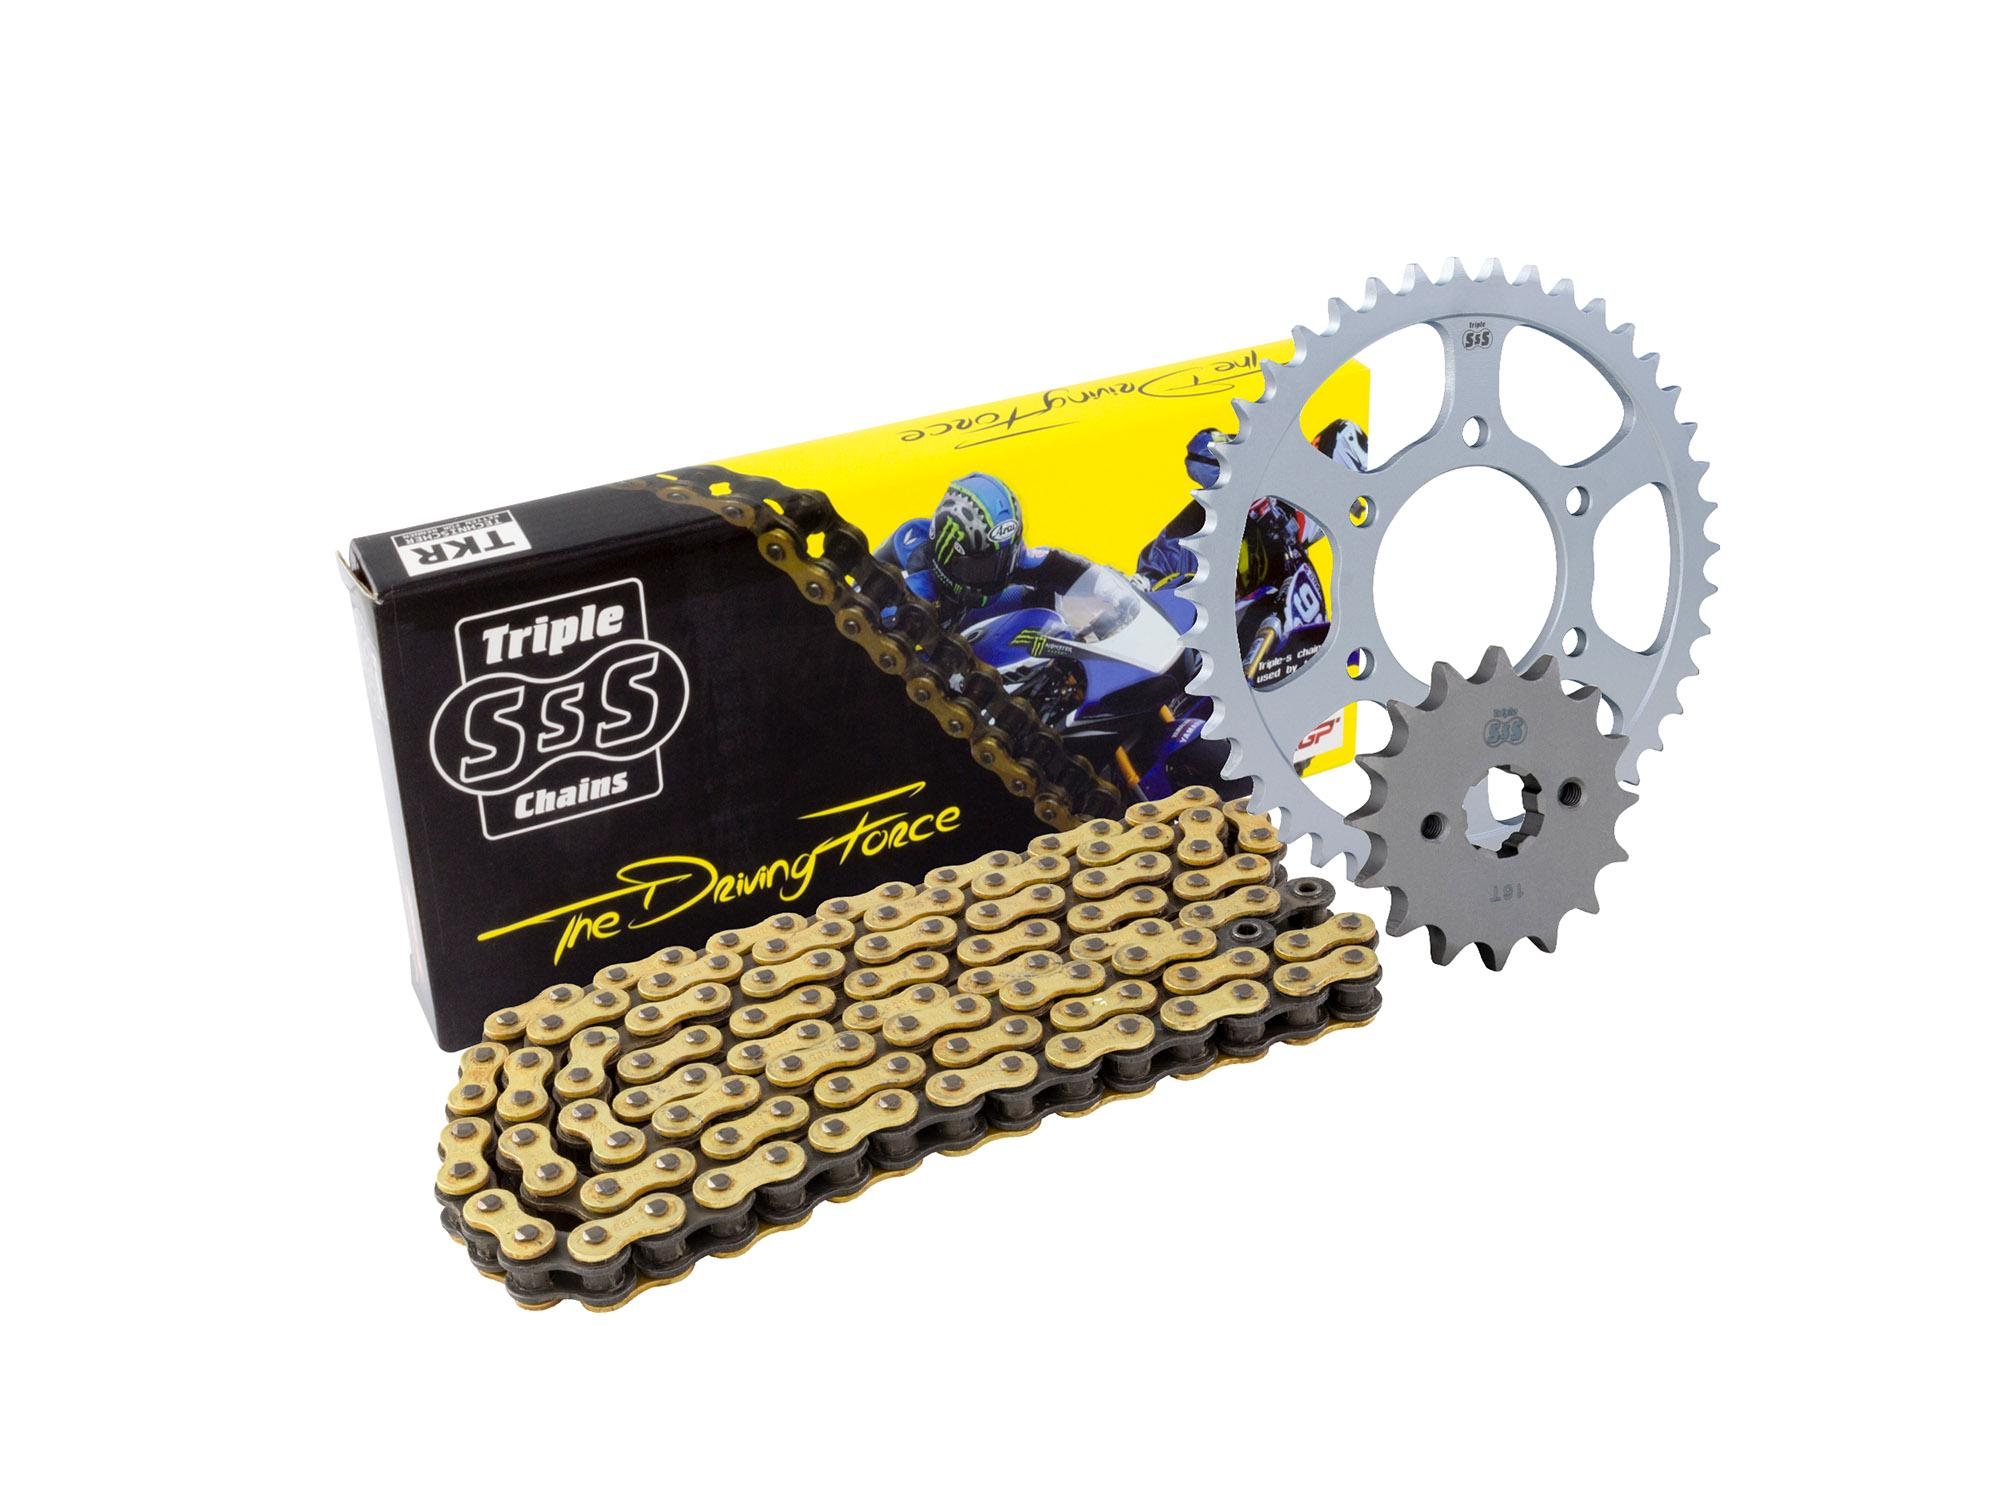 Honda XRV750 Africa Twin 93-03 Chain & Sprocket Kit: 16T Front, 45T Rear, HD O-Ring Gold Chain 525H 124Link